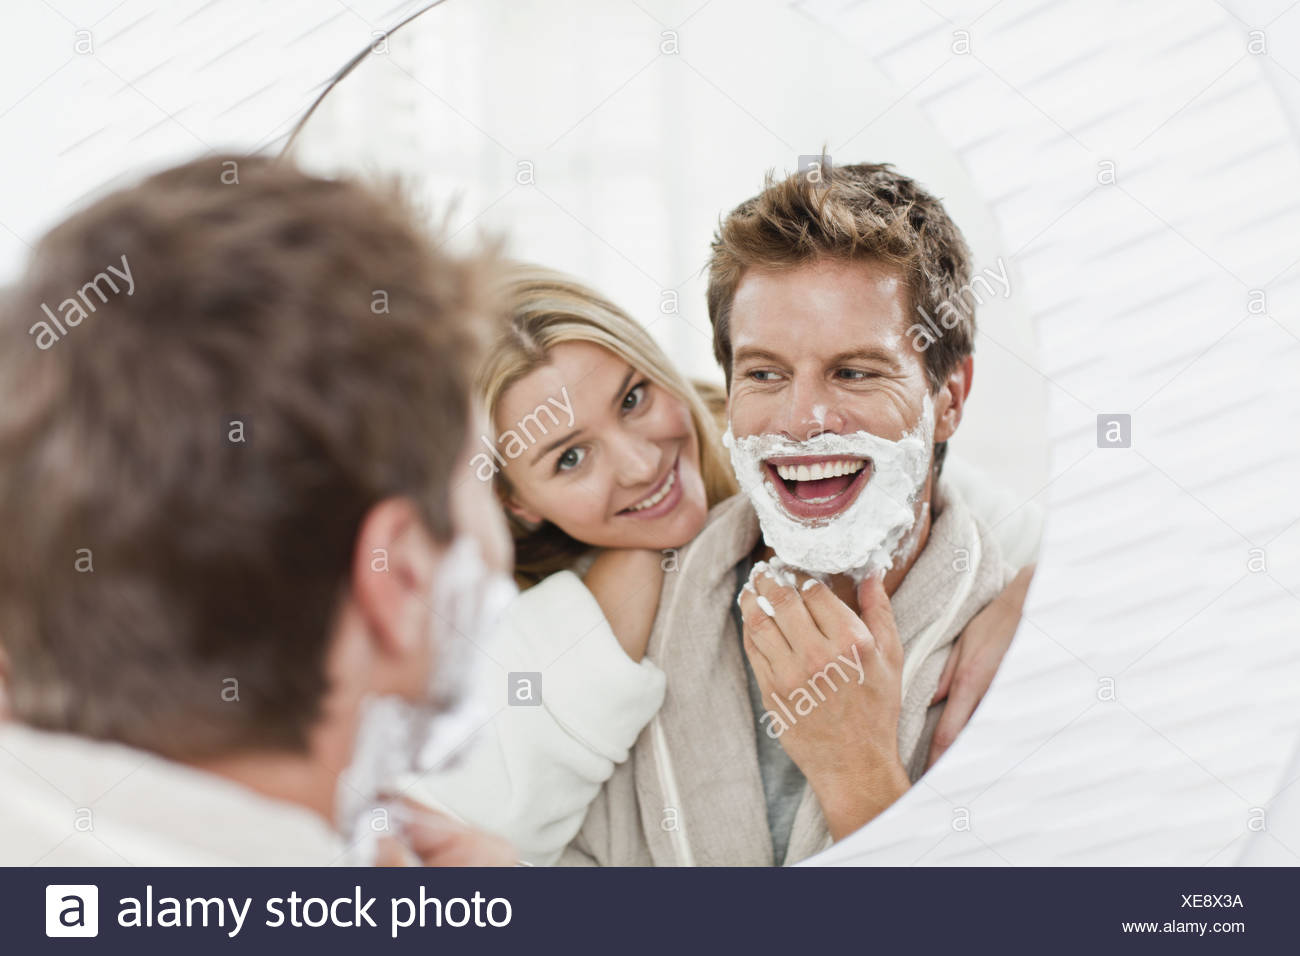 Head shave stock photos head shave stock images alamy woman watching boyfriend shave stock image buycottarizona Image collections